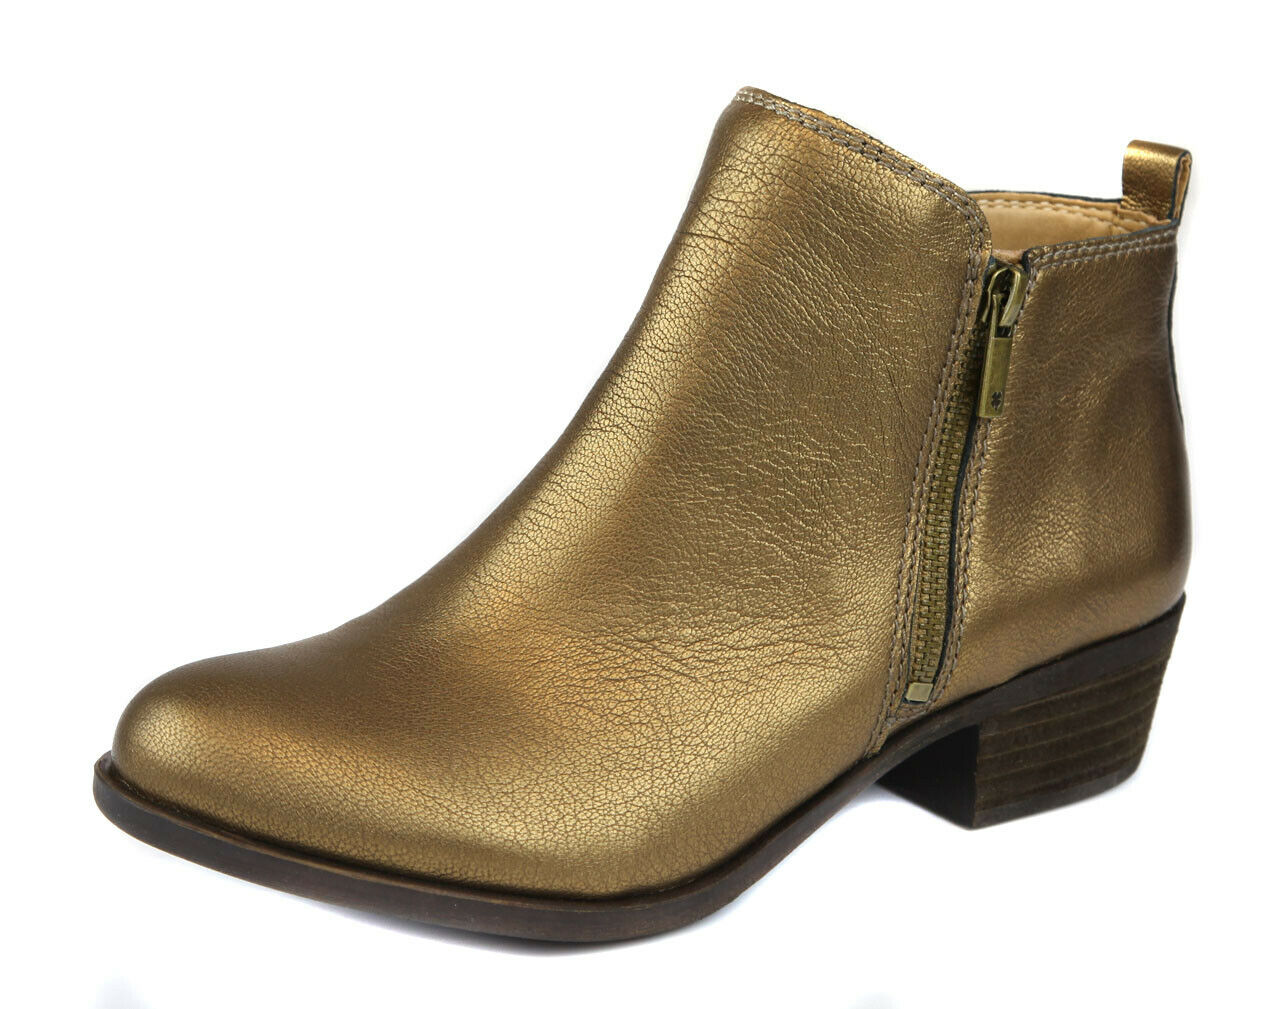 Lucky Brand Women's Old Bronze Basel Zipper Leather Bootie shoes Ret  129 New